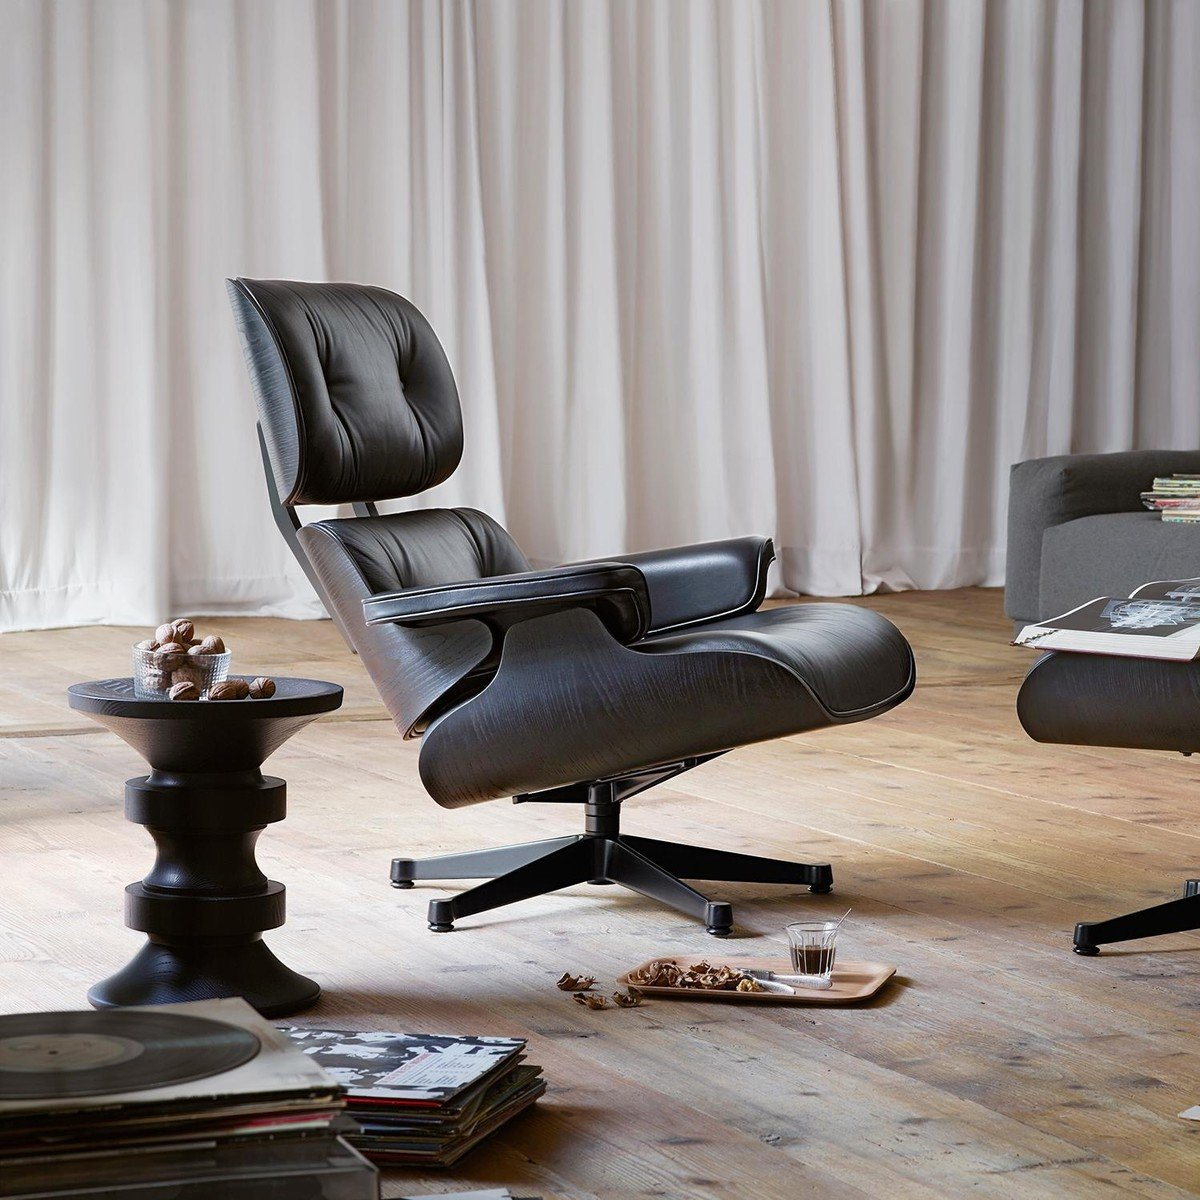 Eames Vitra Lounge Chair eames lounge chair vitra ambientedirect com